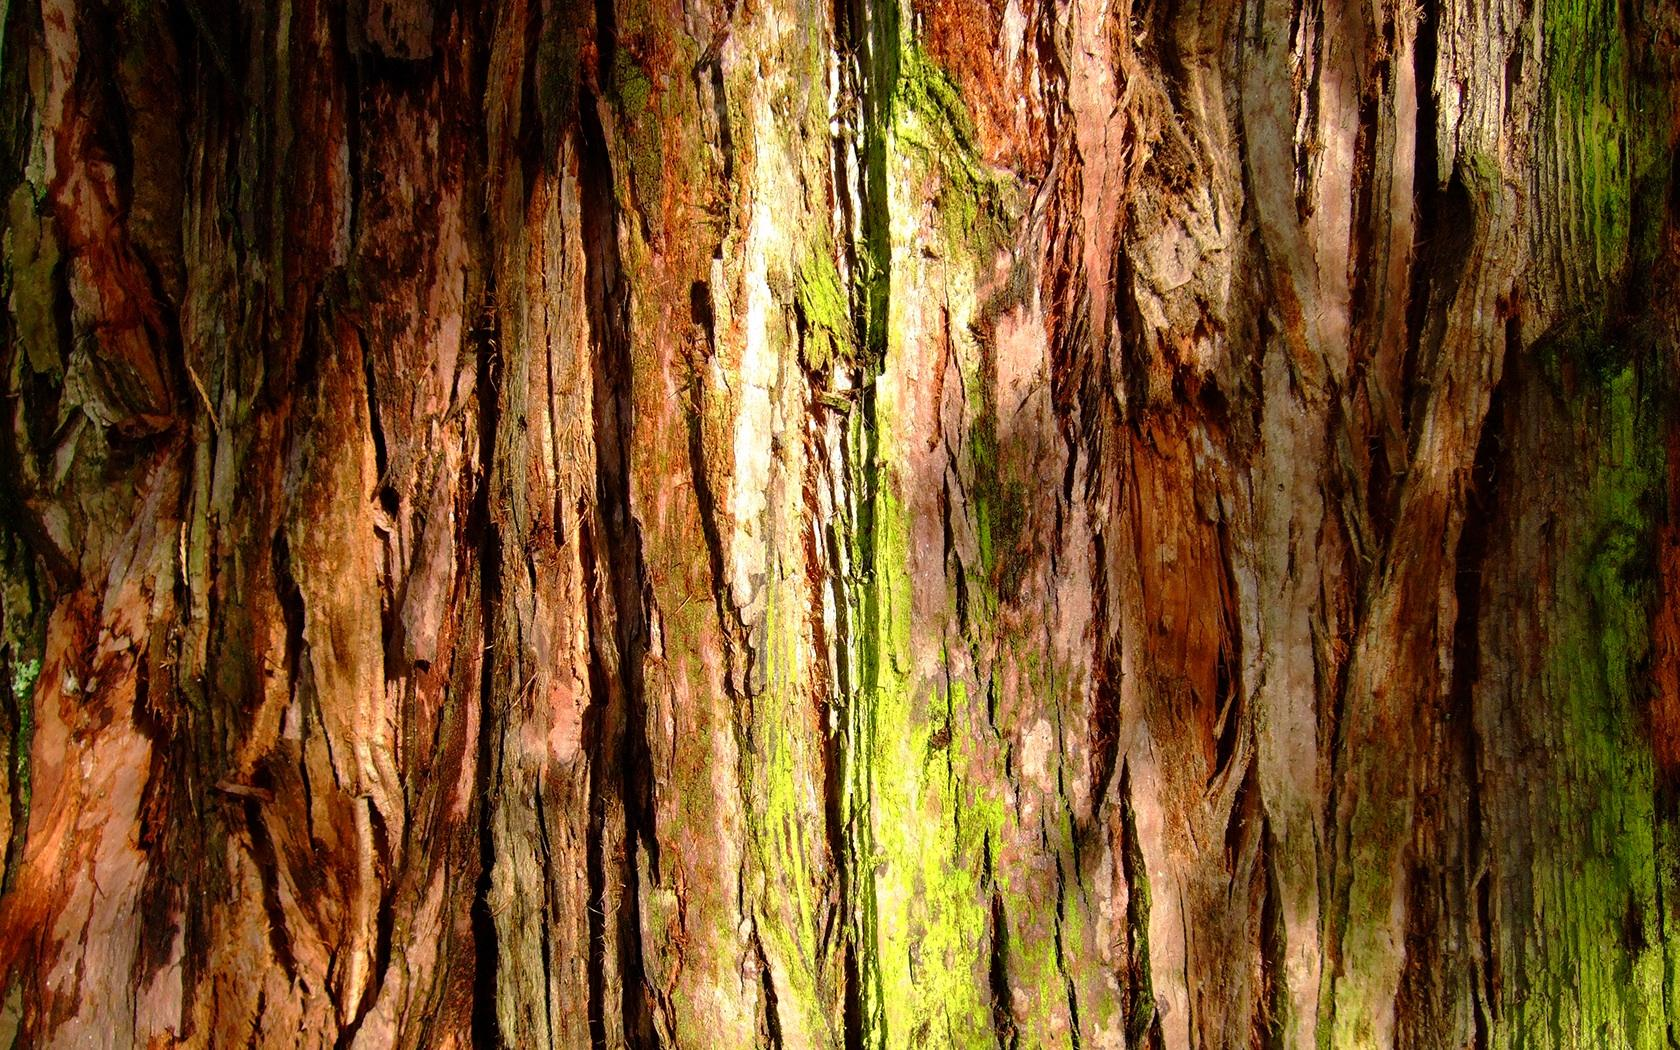 Wallpaper Tags: mossy nature tree bark green plants moss photography forests